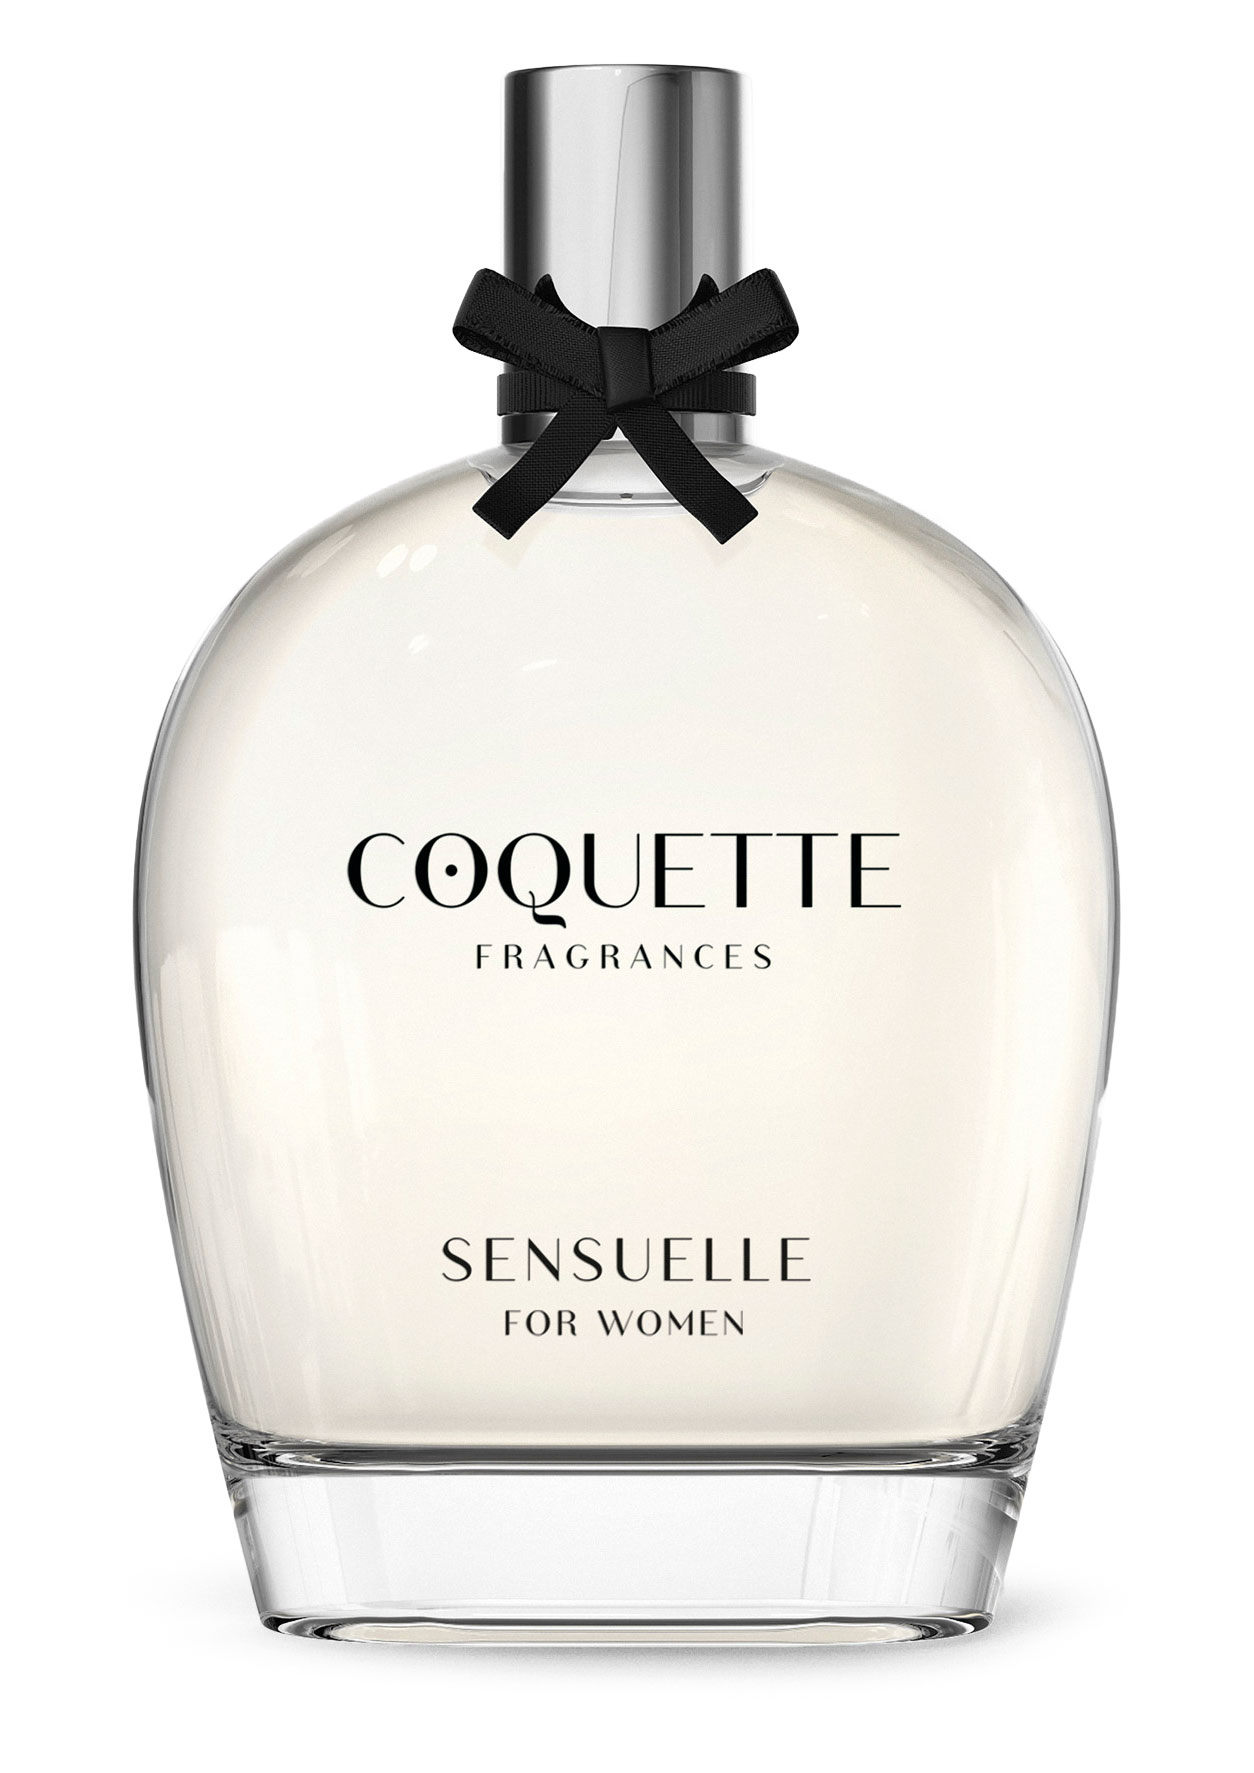 Coquette-Fragrances-Sensuelle-Magasalfa-2